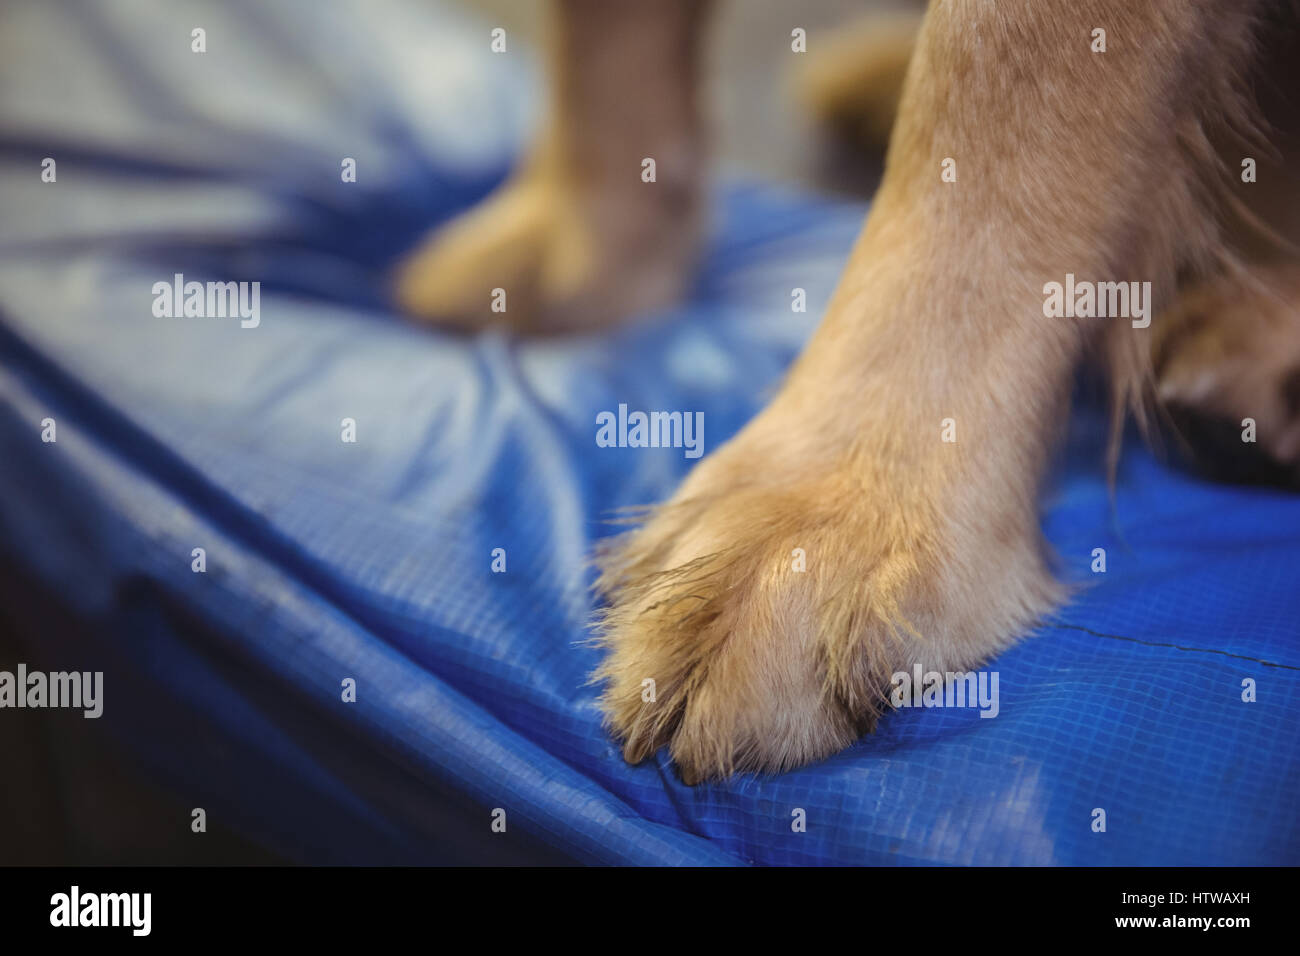 Dog paws on dog bed in dog care center - Stock Image